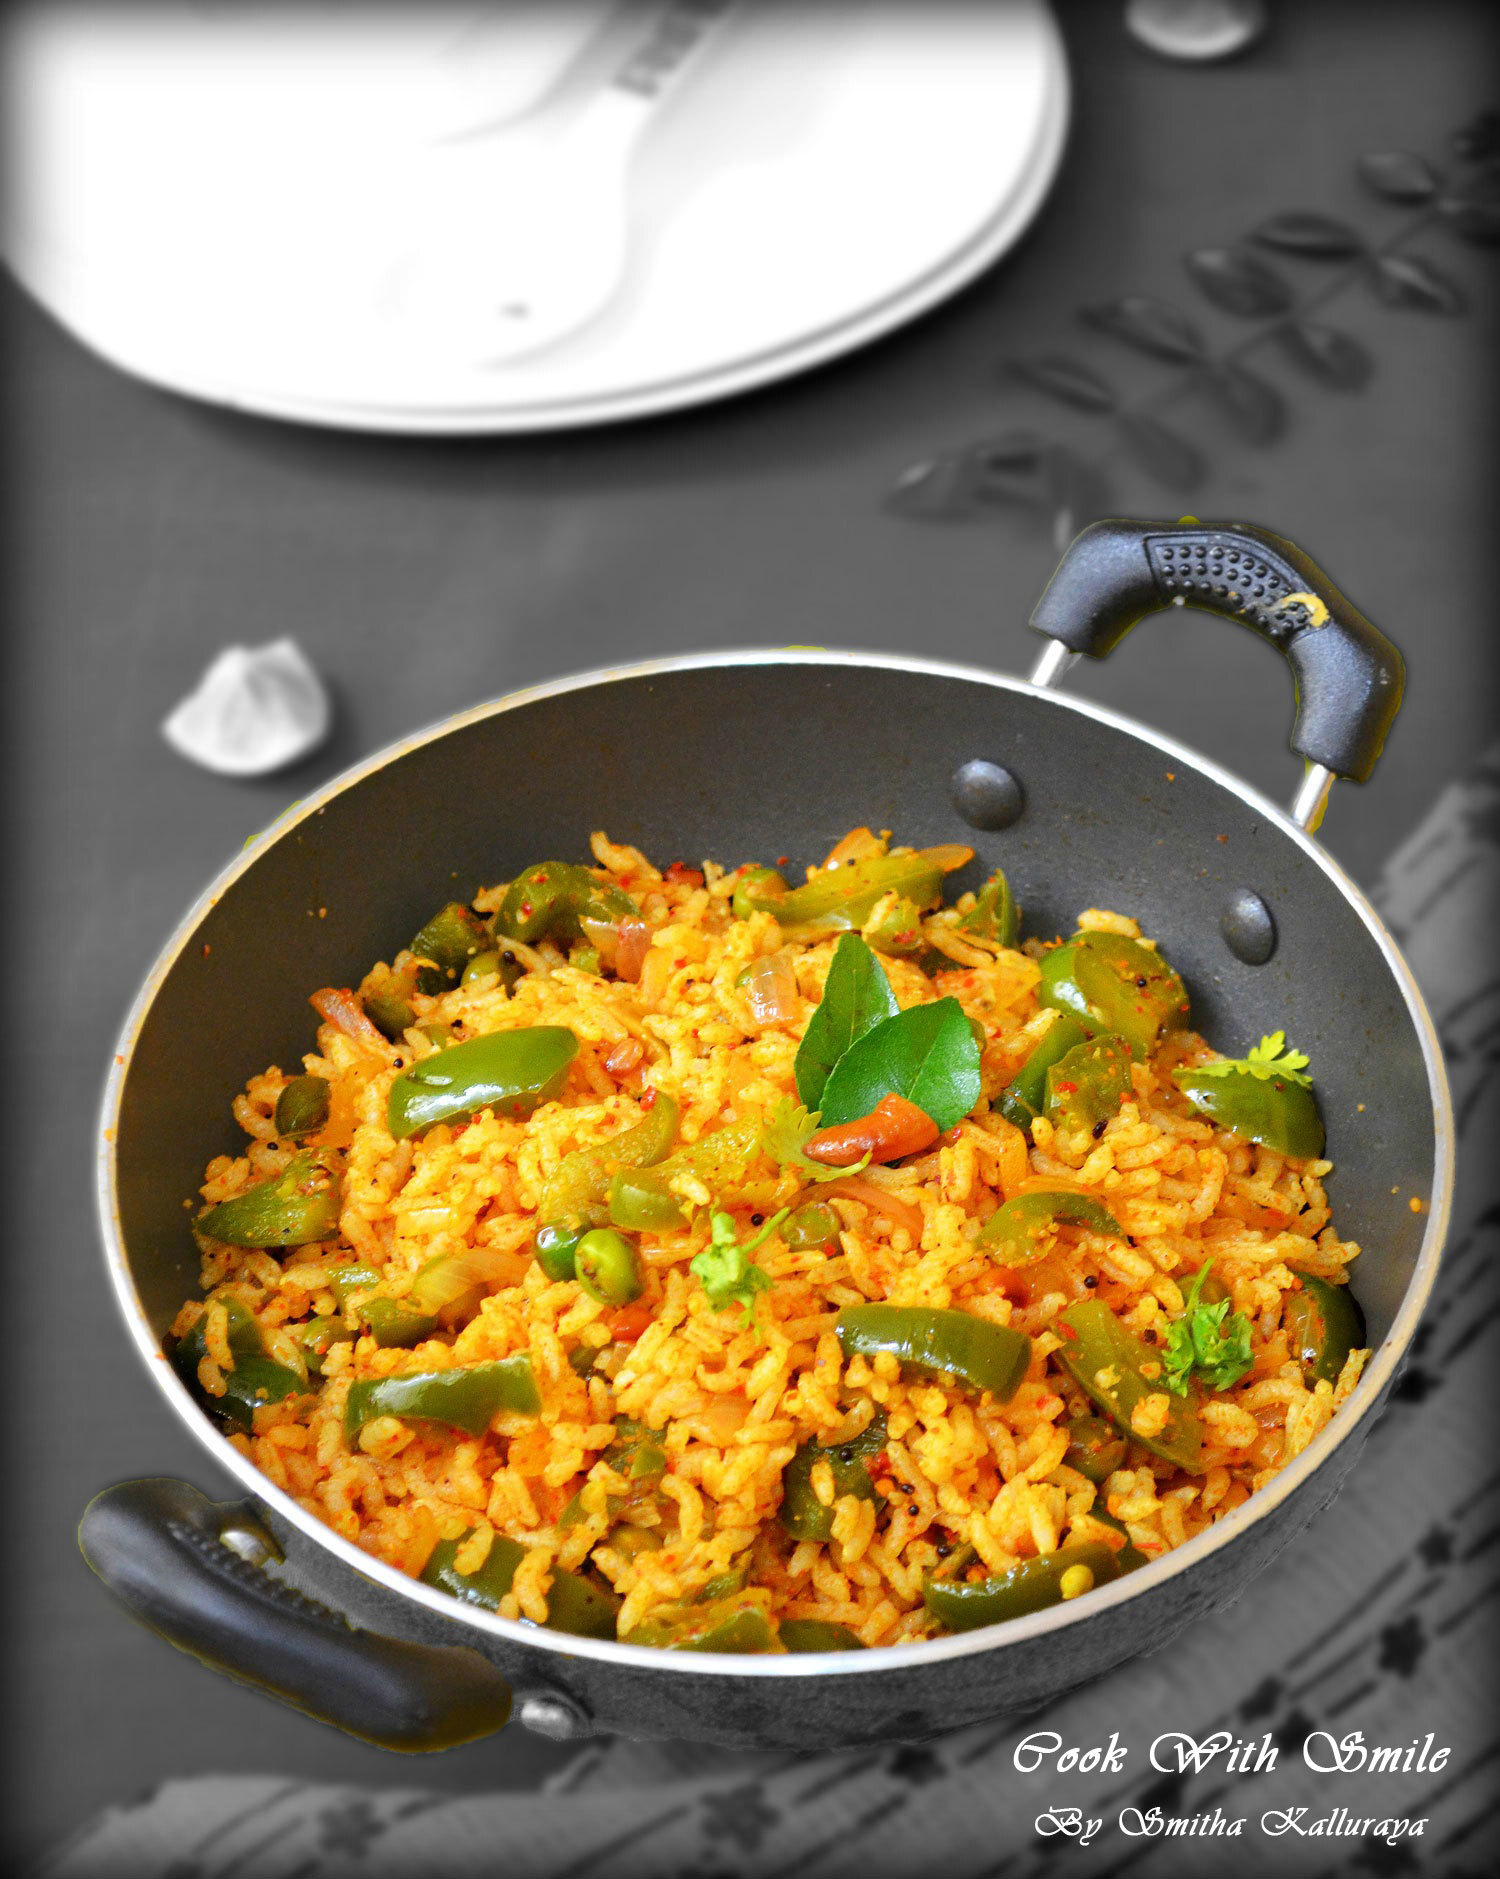 CAPSICUM BATH RECIPE / CAPSICUM RICE RECIPE - EASY LUNCHBOX RECIPES !!